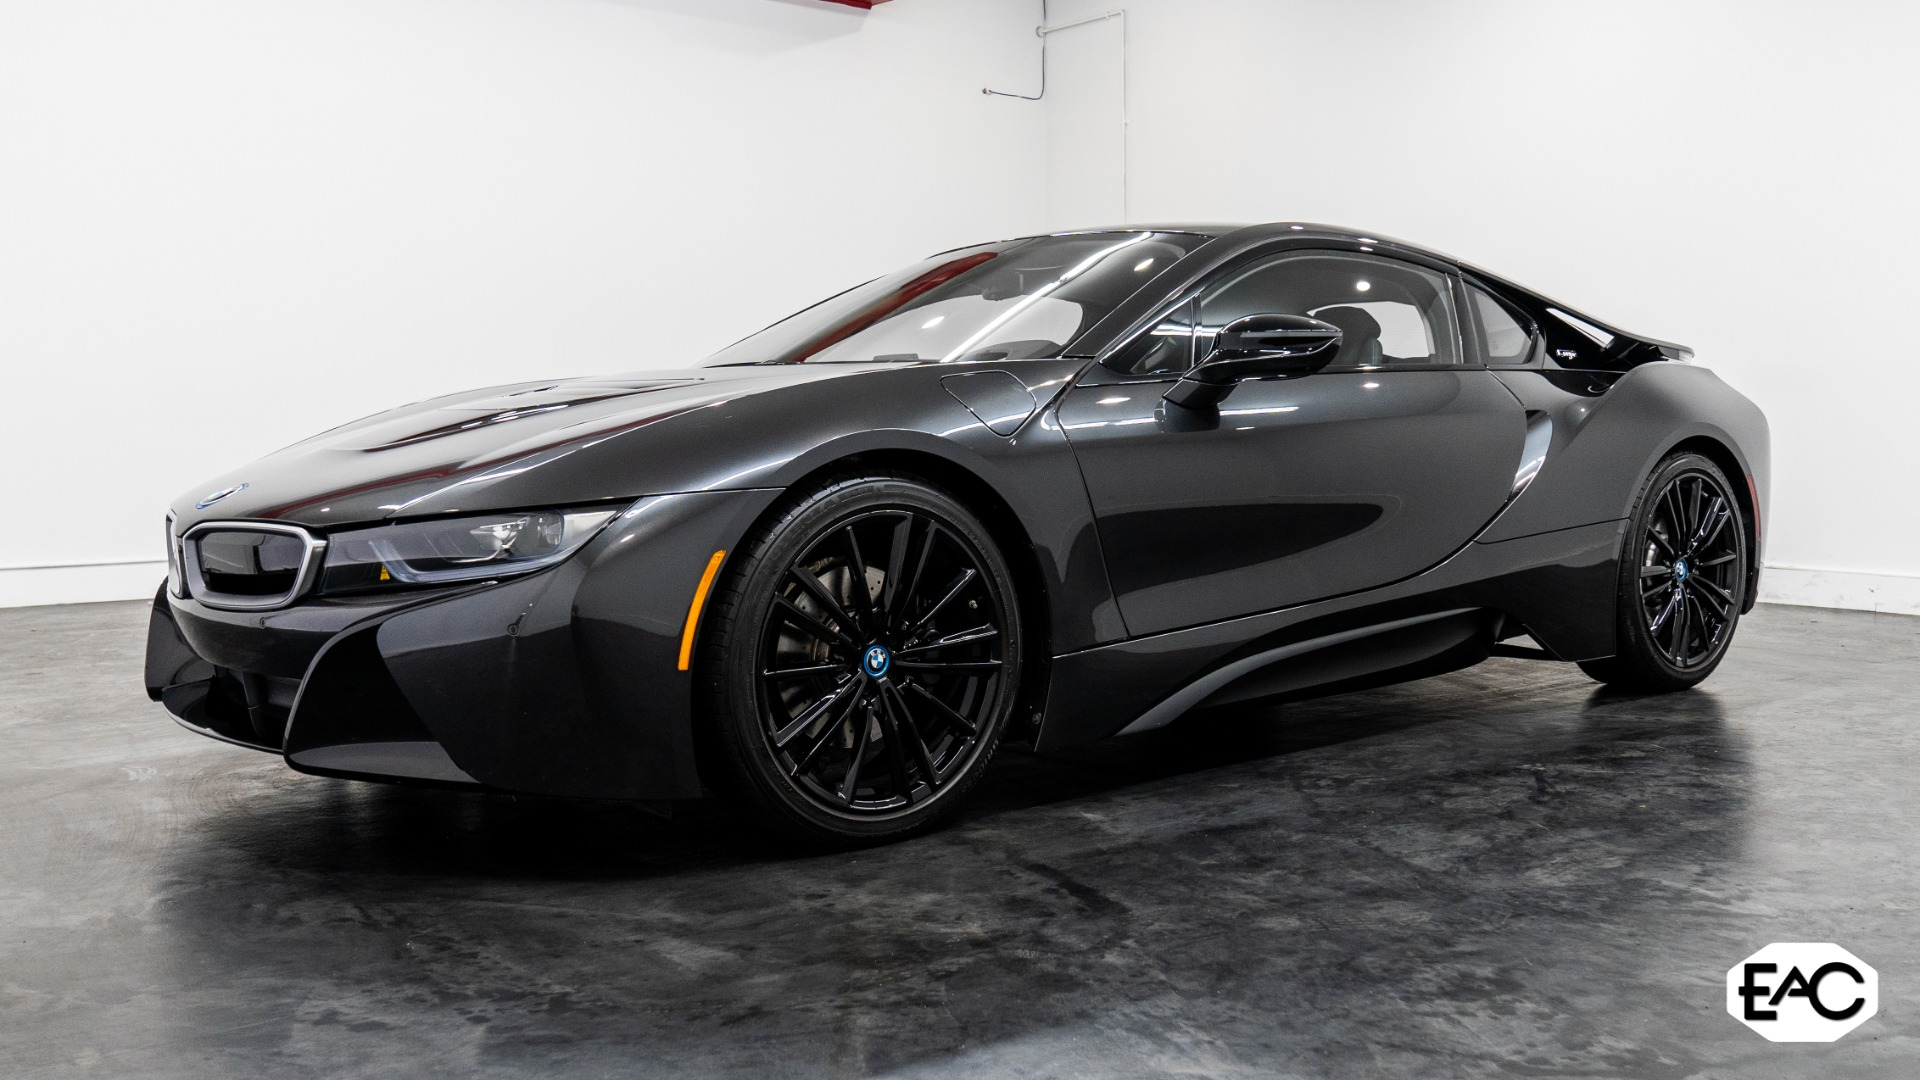 Used 2019 BMW i8 for sale $119,990 at Empire Auto Collection in Warren MI 48091 1